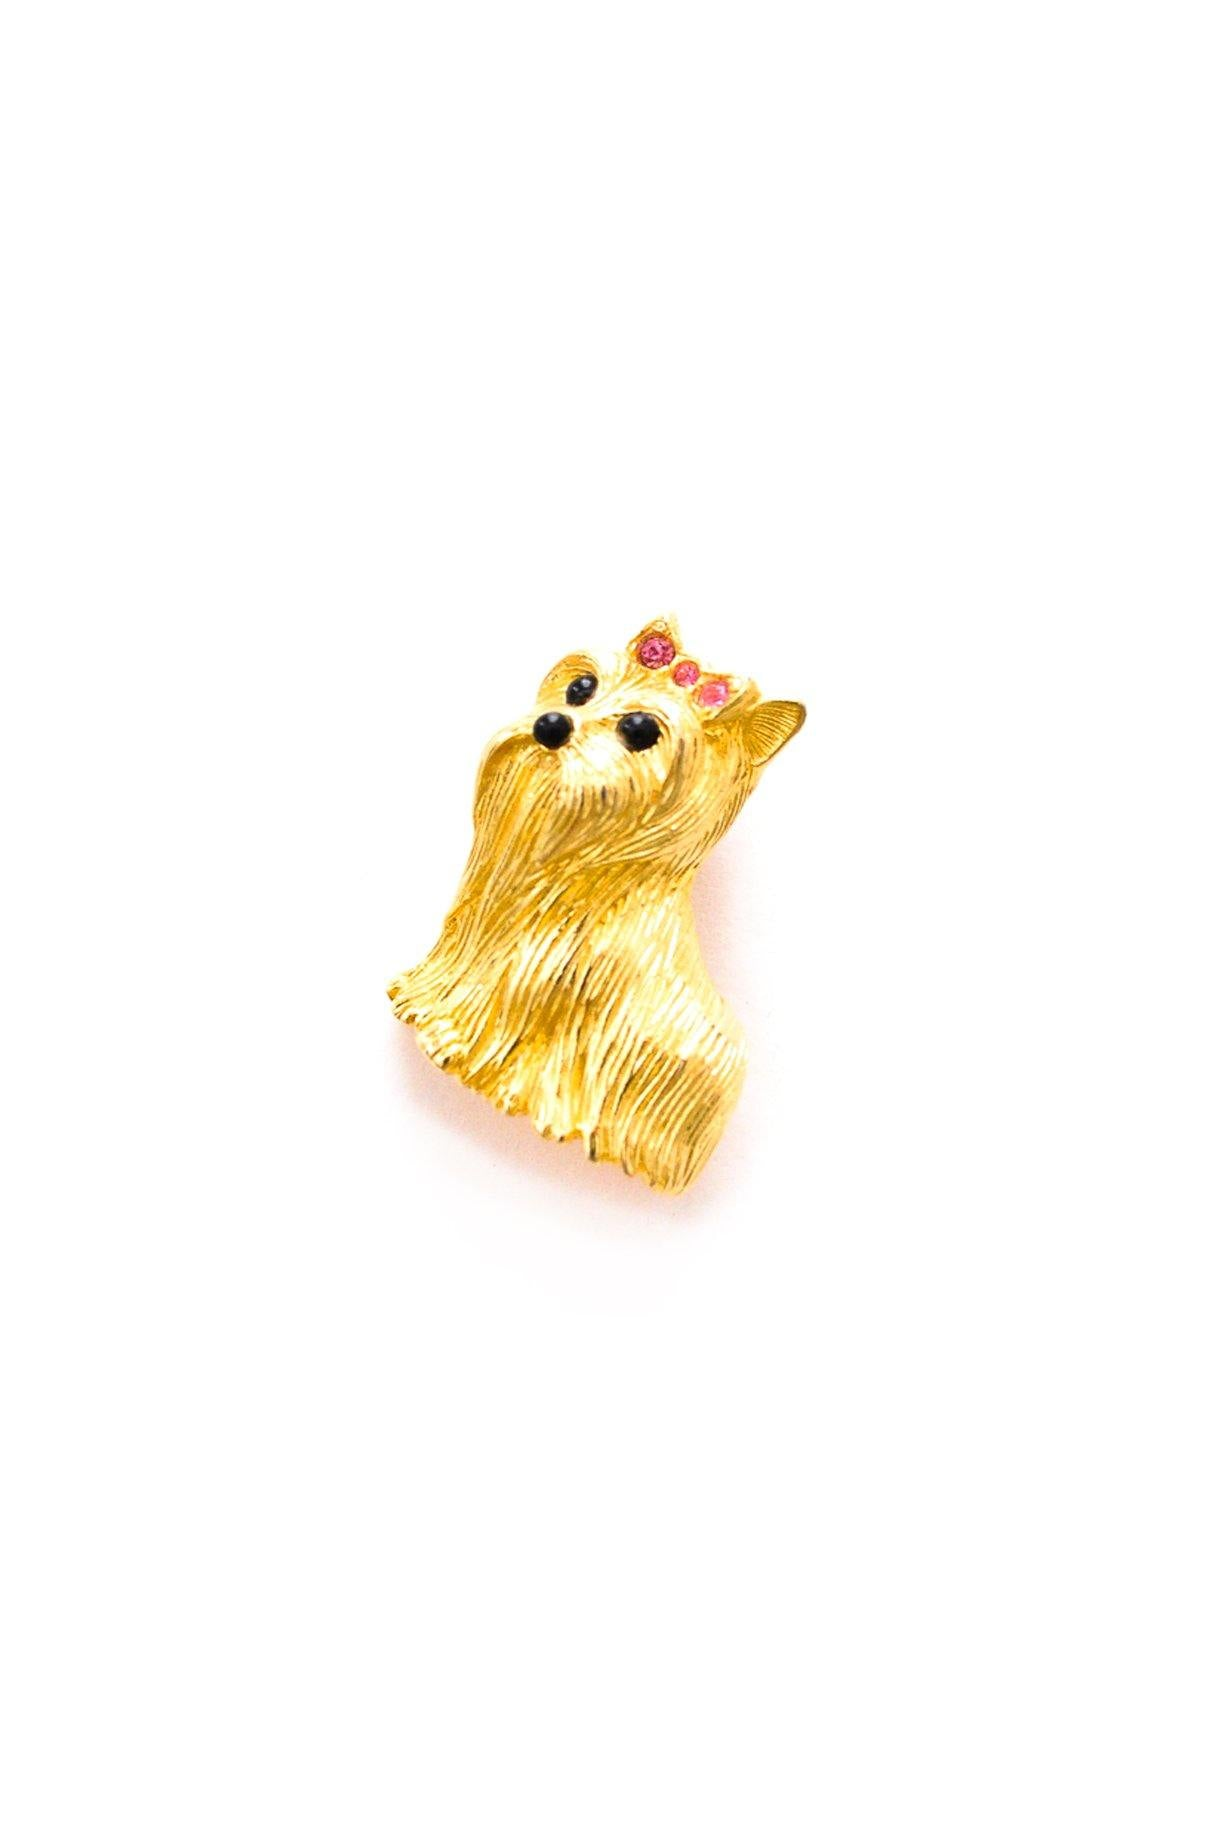 Vintage mini Joan Rivers terrier pin from Sweet & Spark.